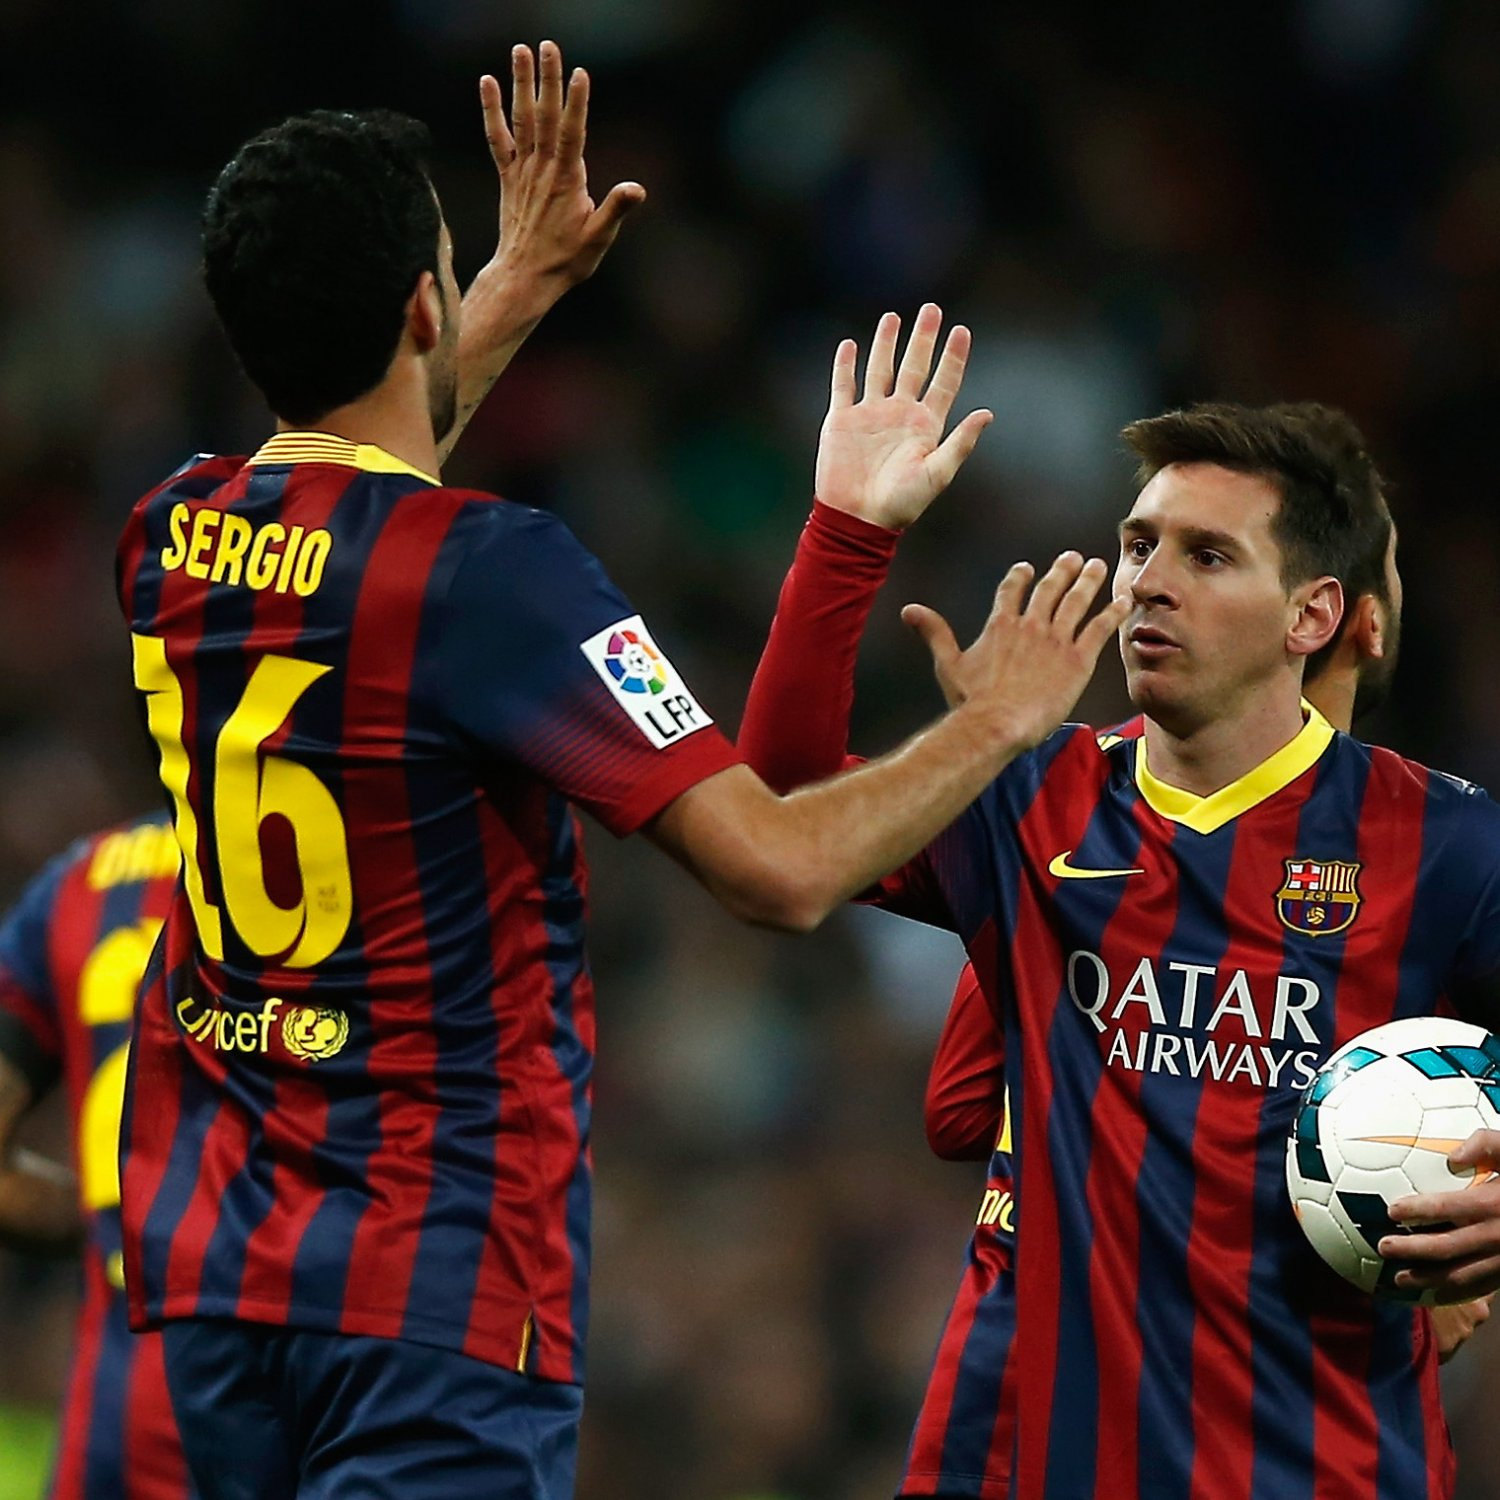 Barcelona Vs. Celta Vigo: La Liga Live Score, Highlights